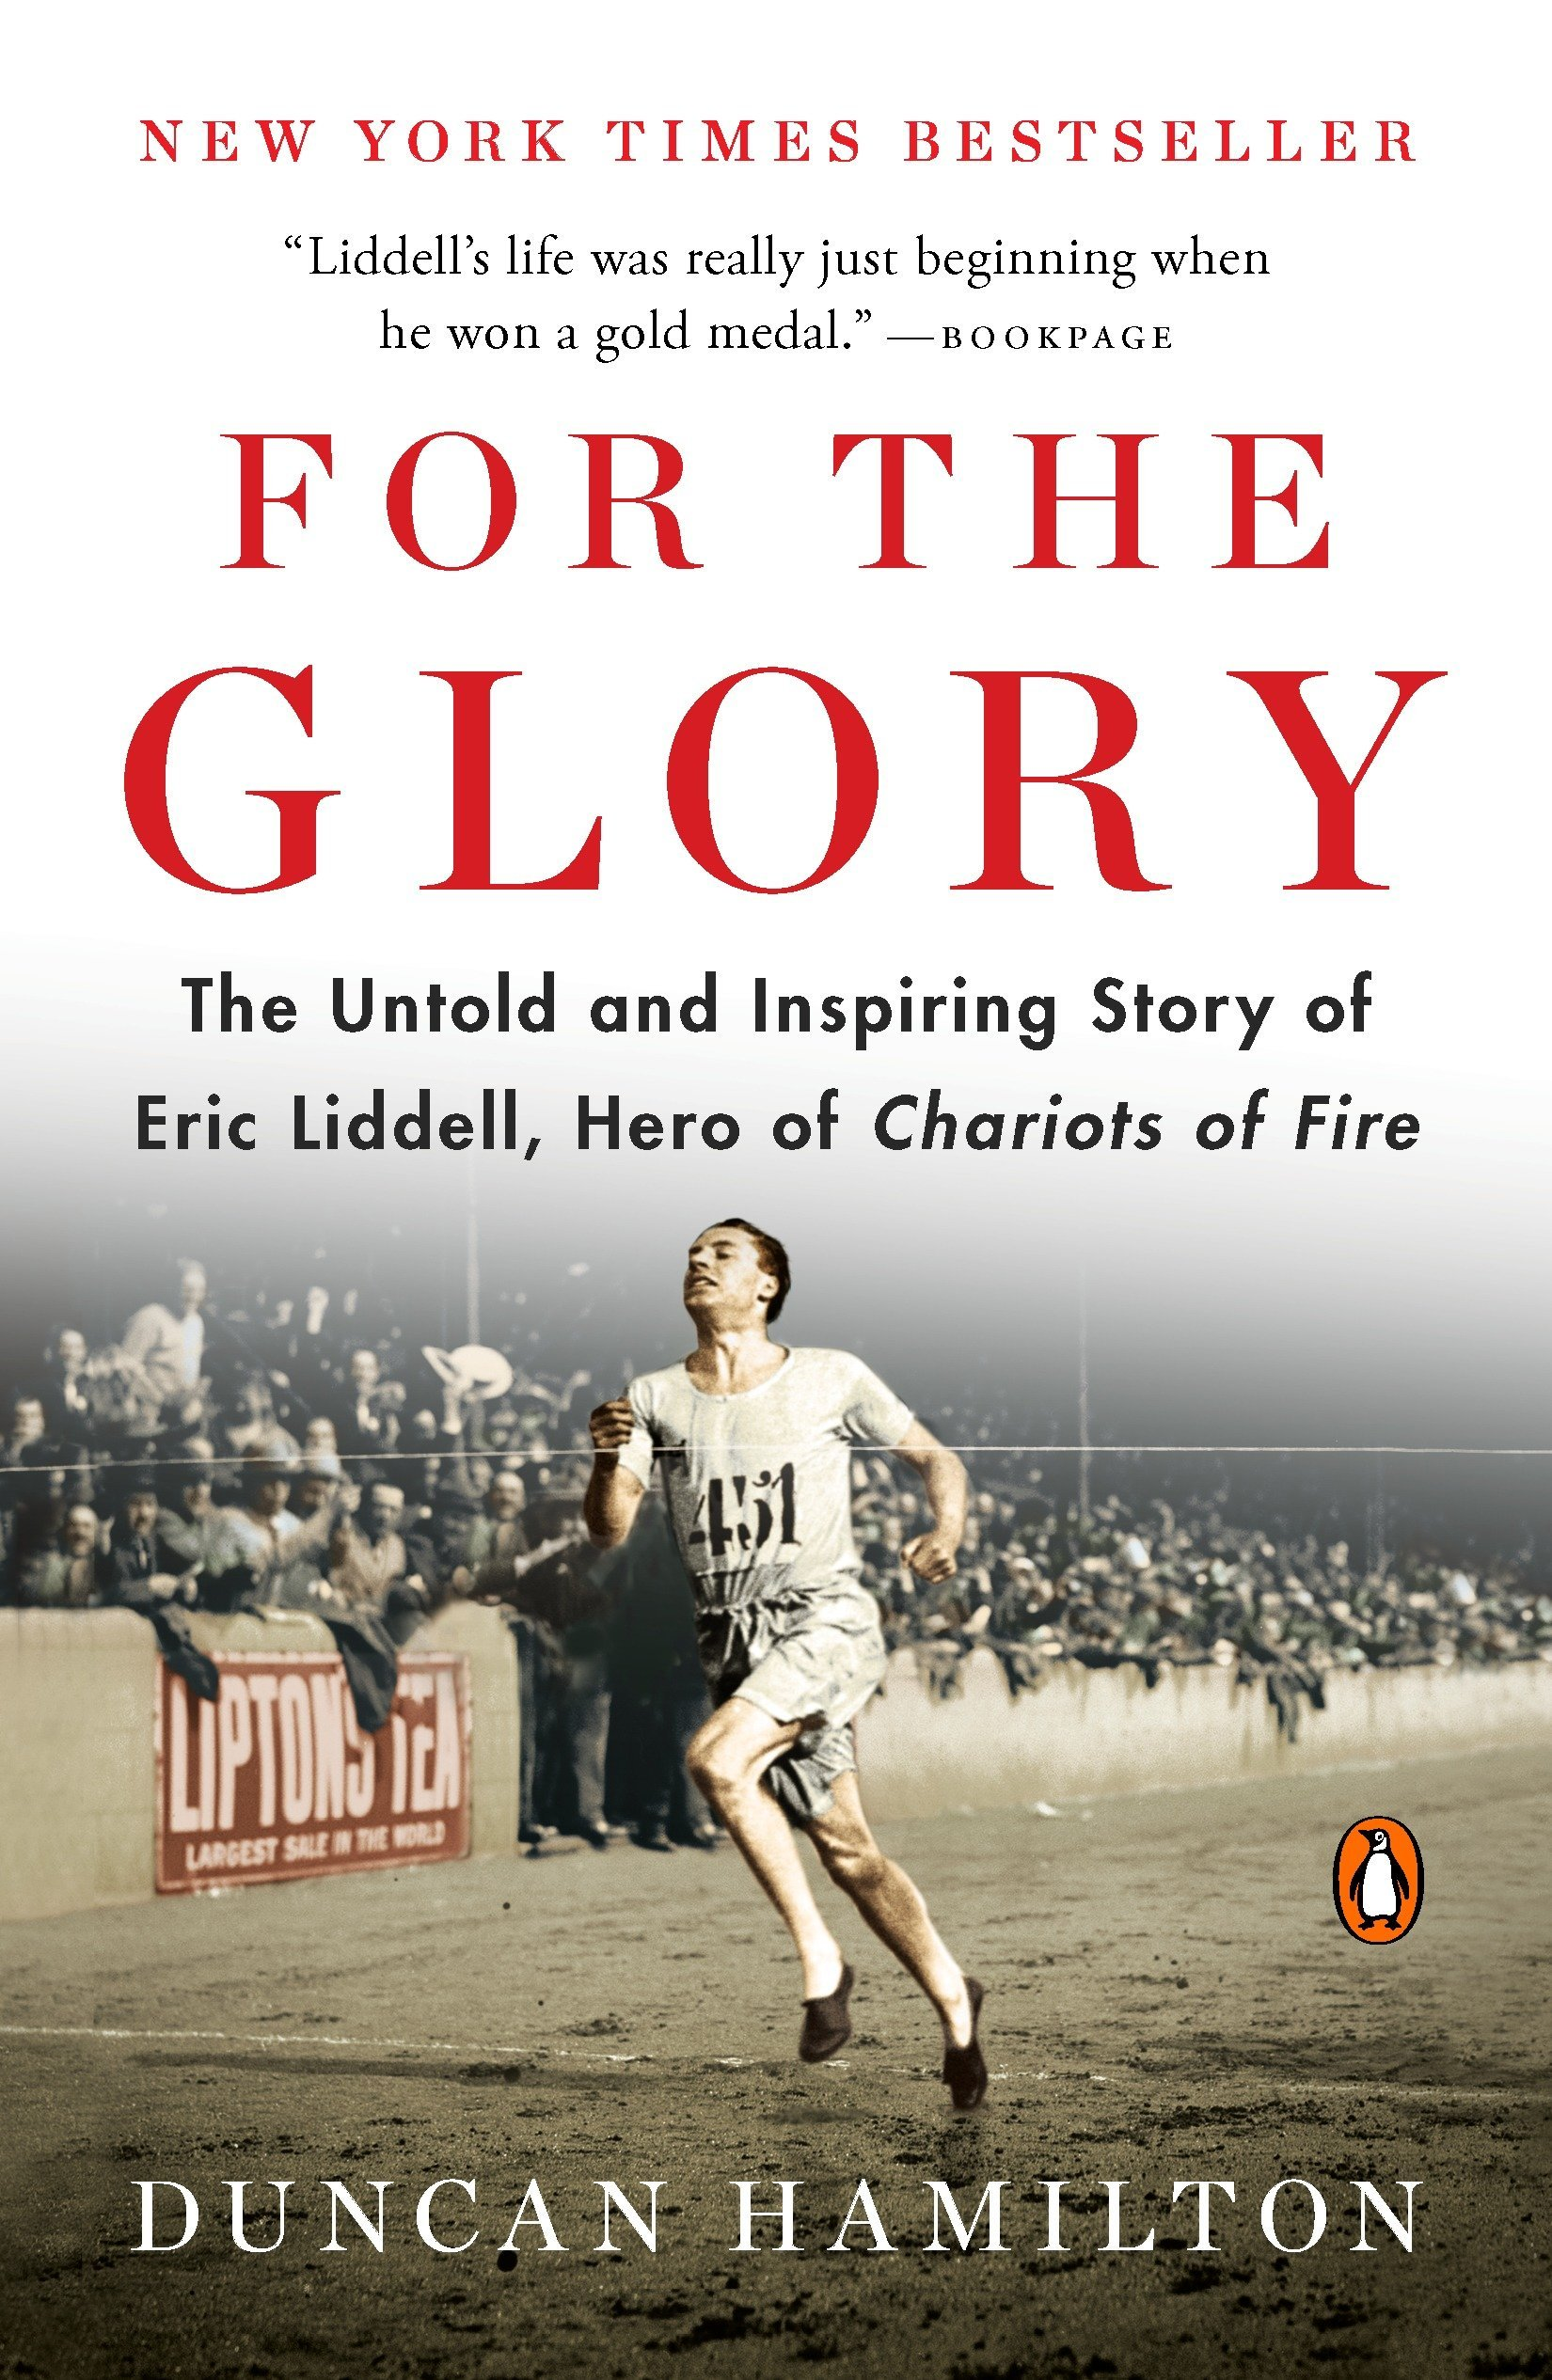 For the Glory: The Untold and Inspiring Story of Eric Liddell, Hero of Chariots of Fire pdf epub